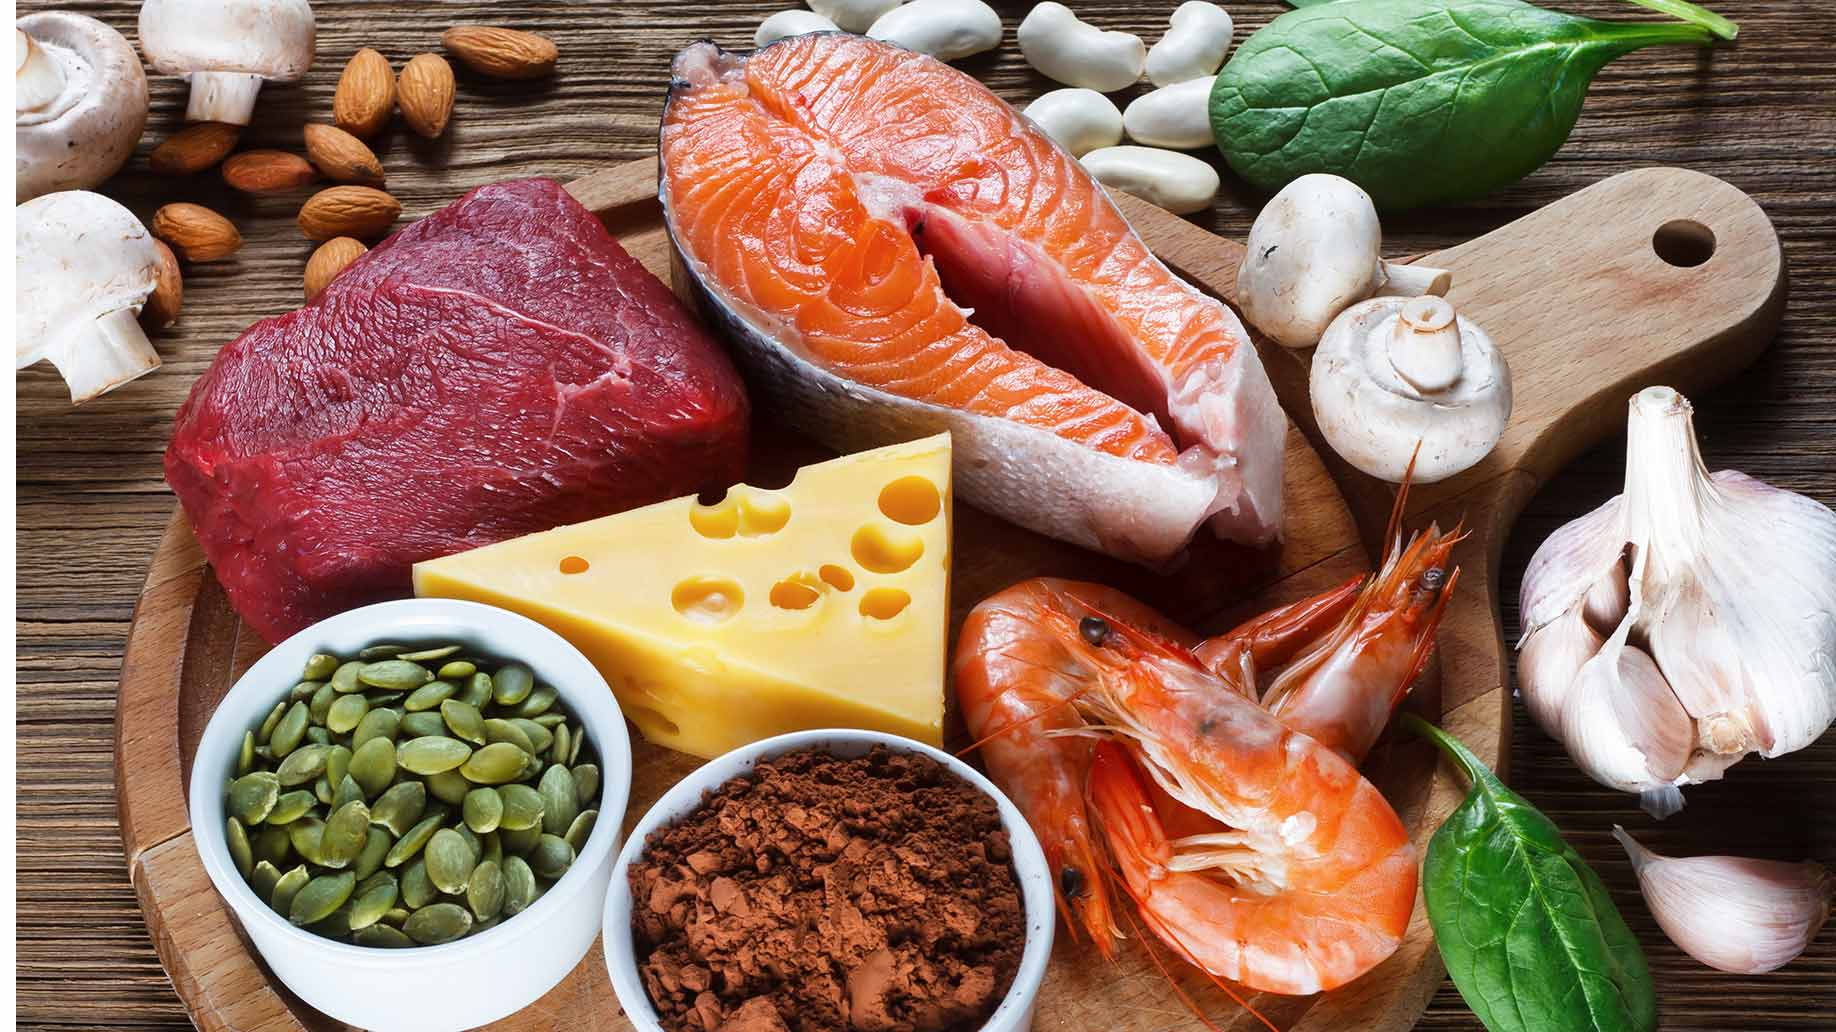 leaky gut zinc salmon shrimp beef pumpkin seed -garlic beans mushrooms natural remedies